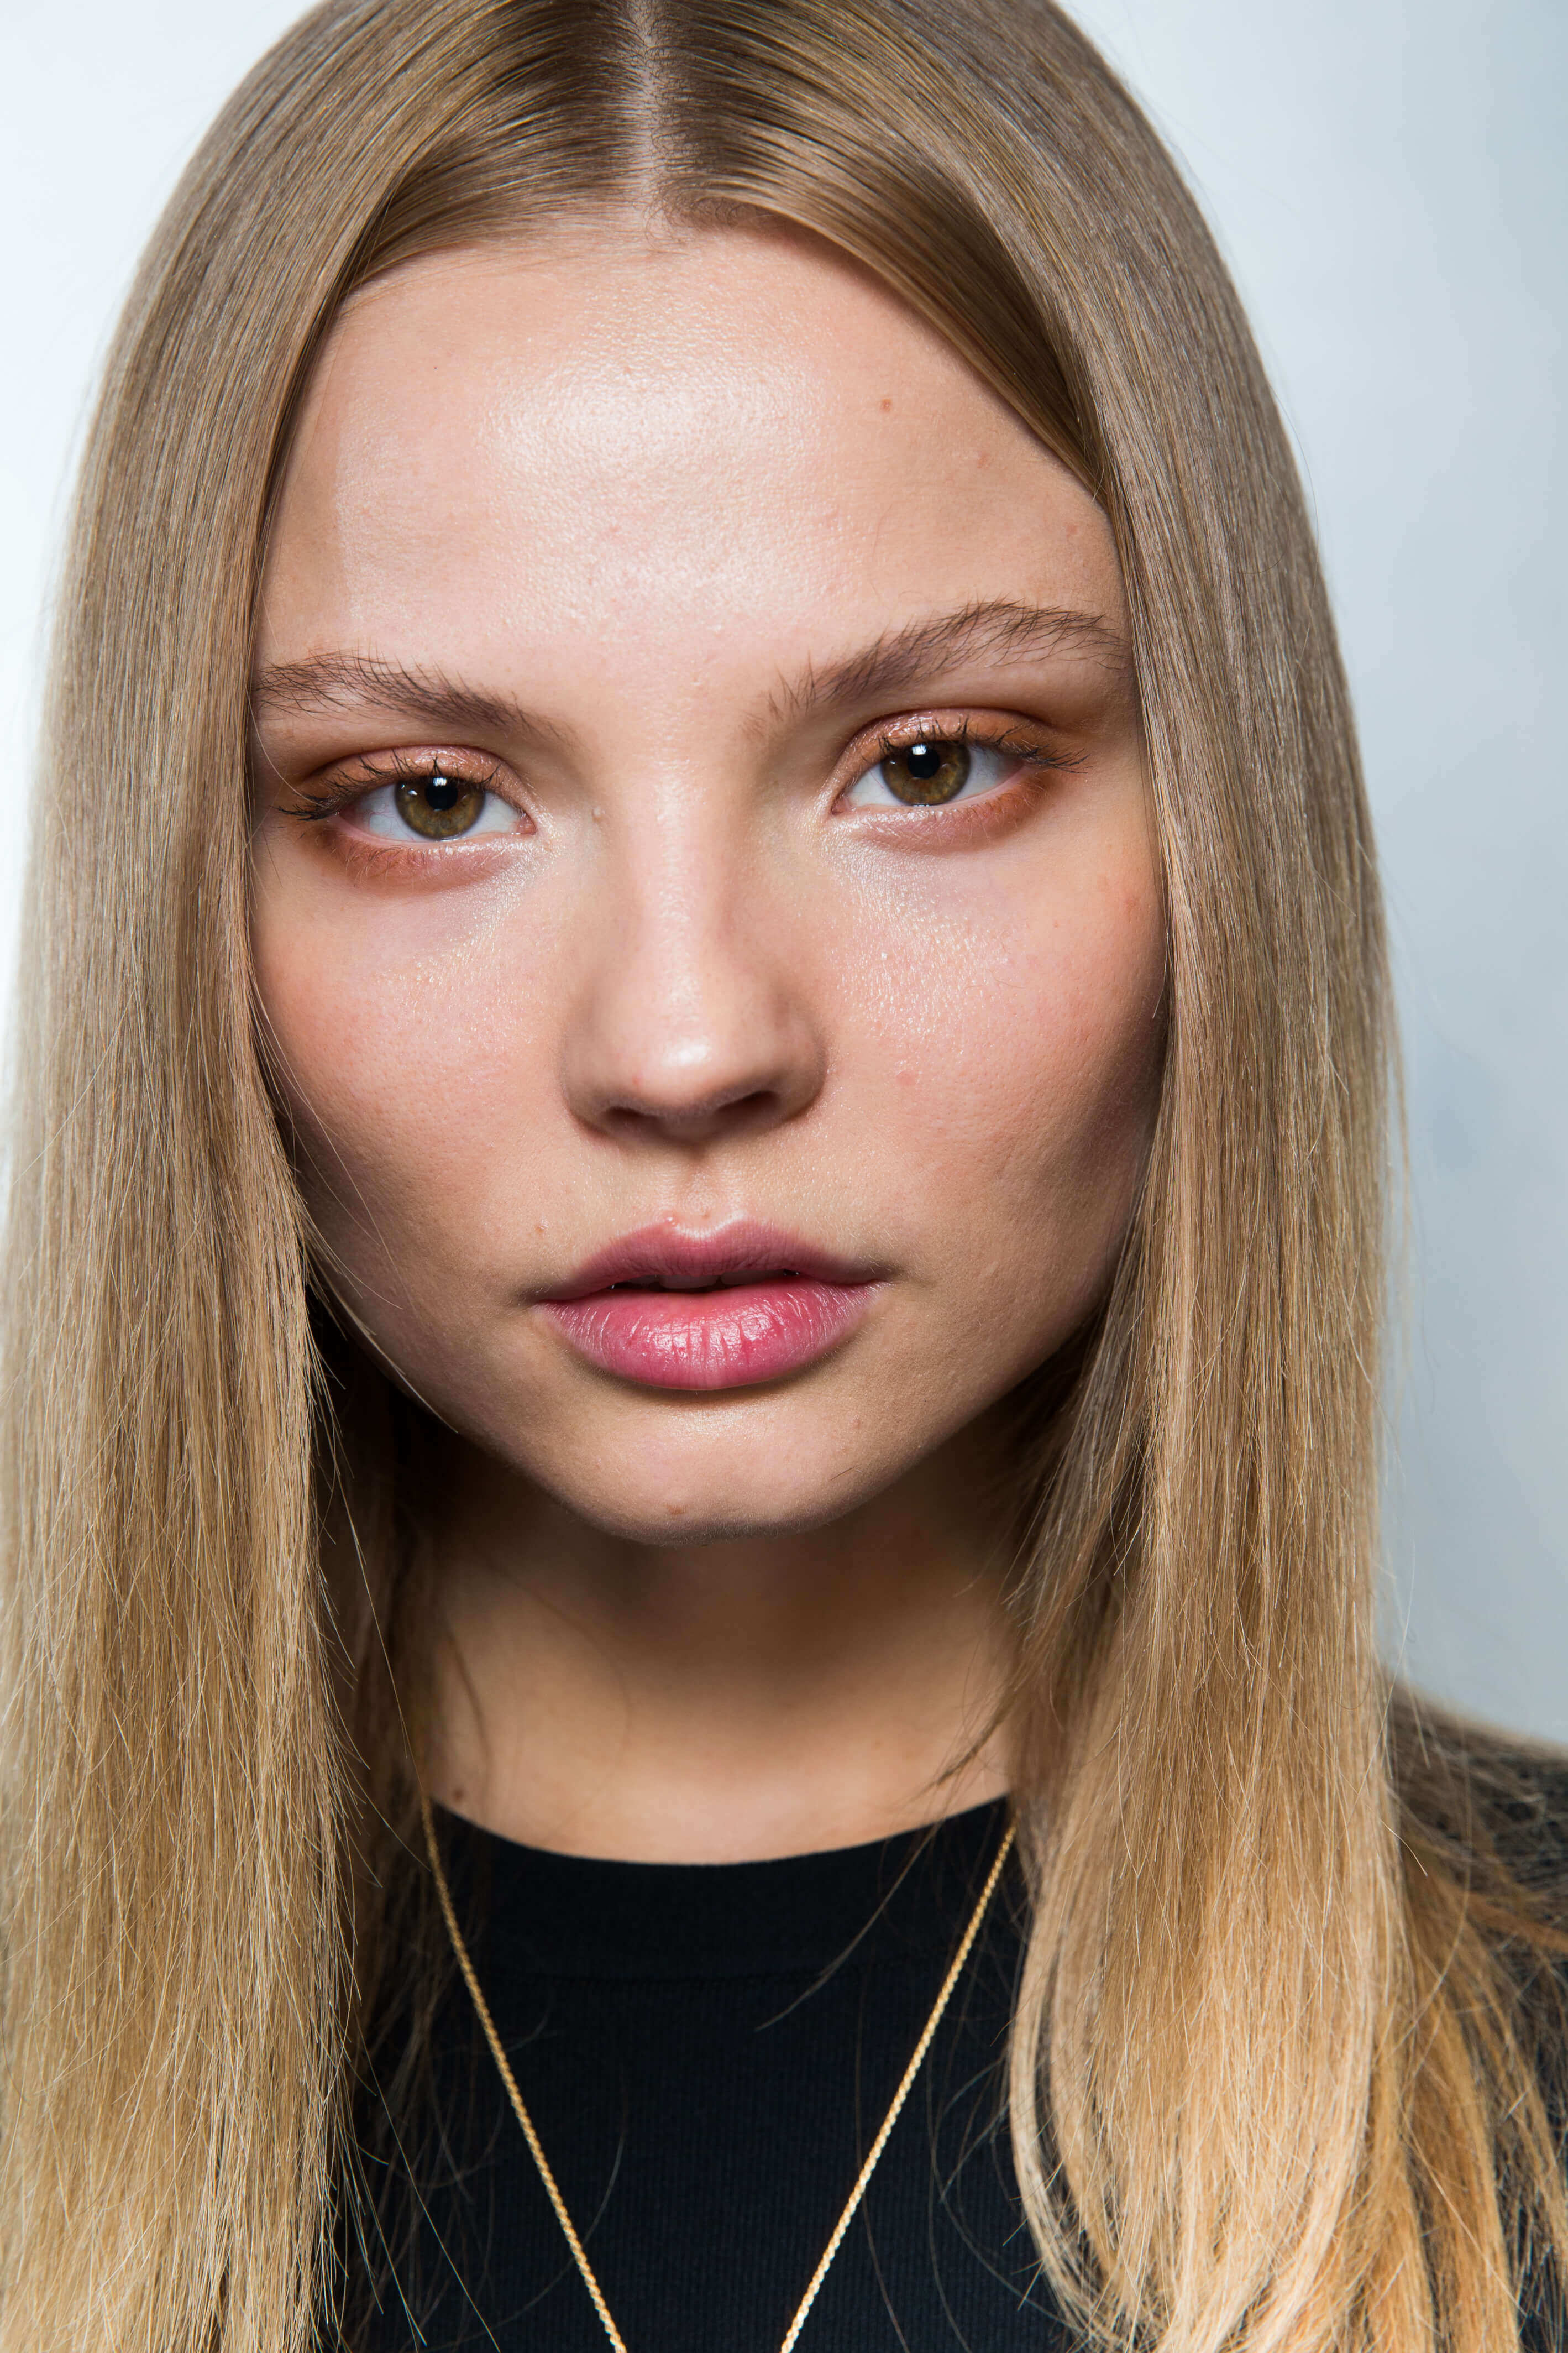 keratin hair treatment: close up shot of model with straight, long dark blonde hair. posing backstage at a fashion show